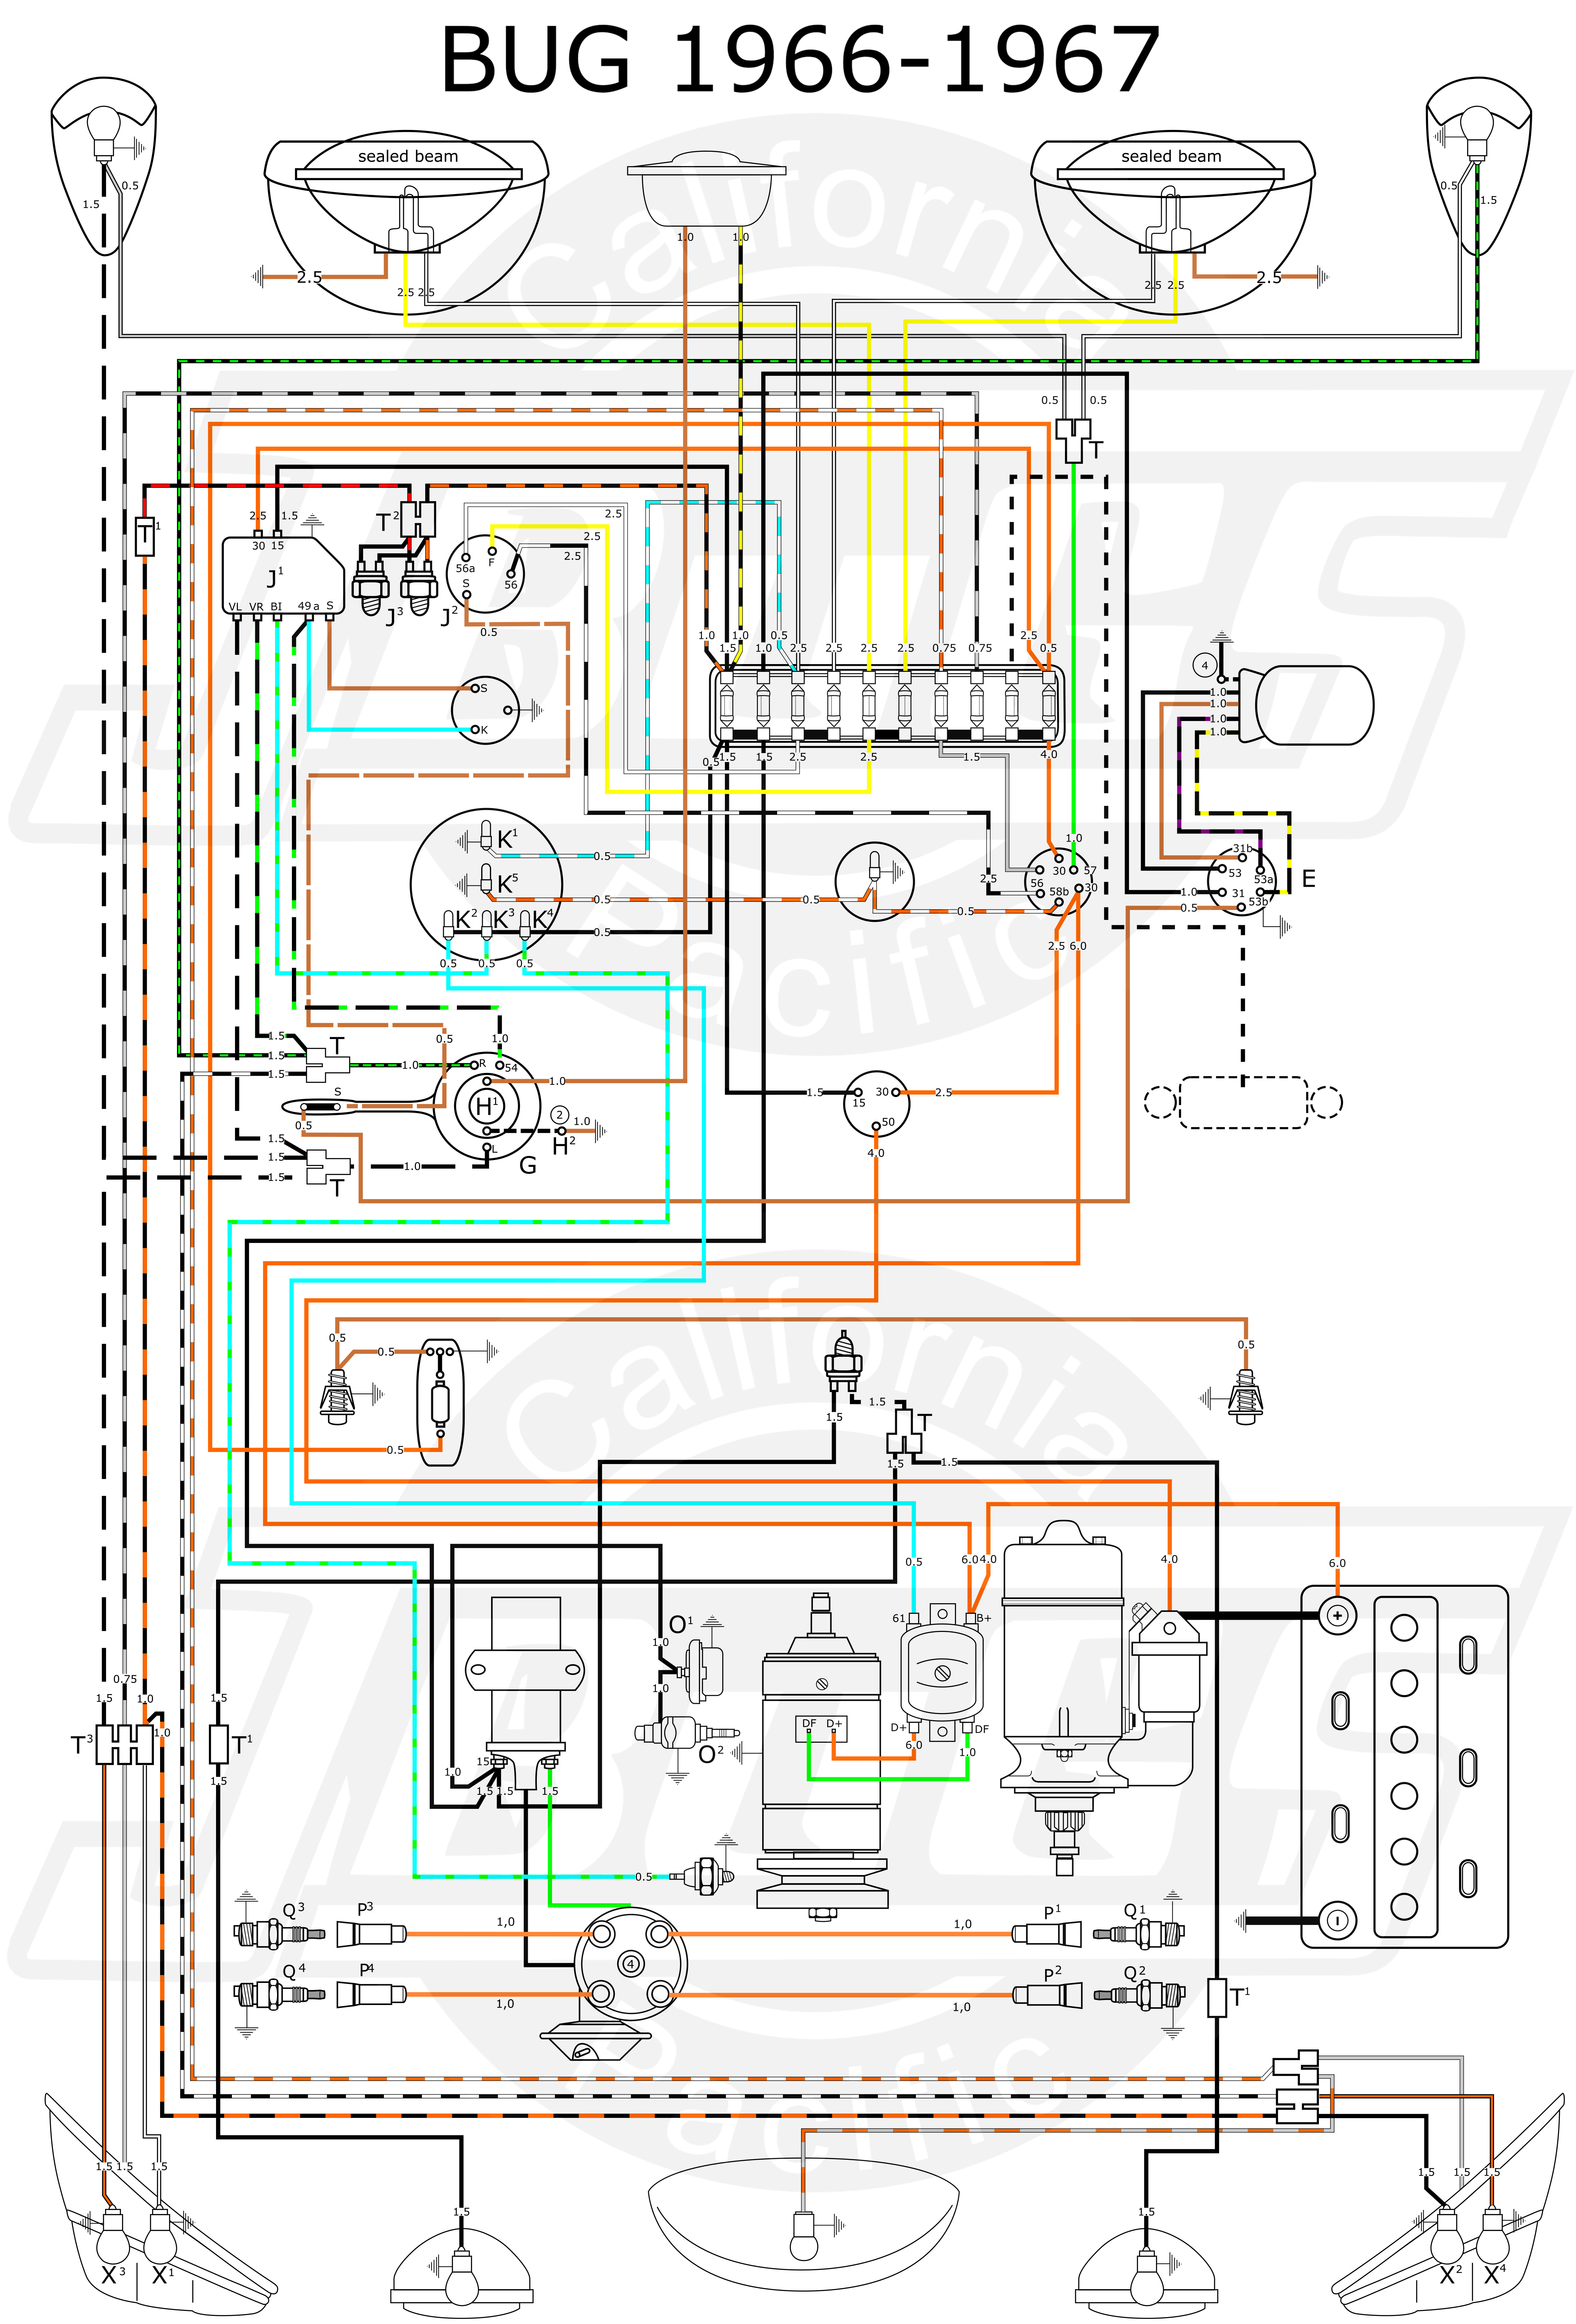 Vw tech article 1966 67 wiring diagram publicscrutiny Gallery